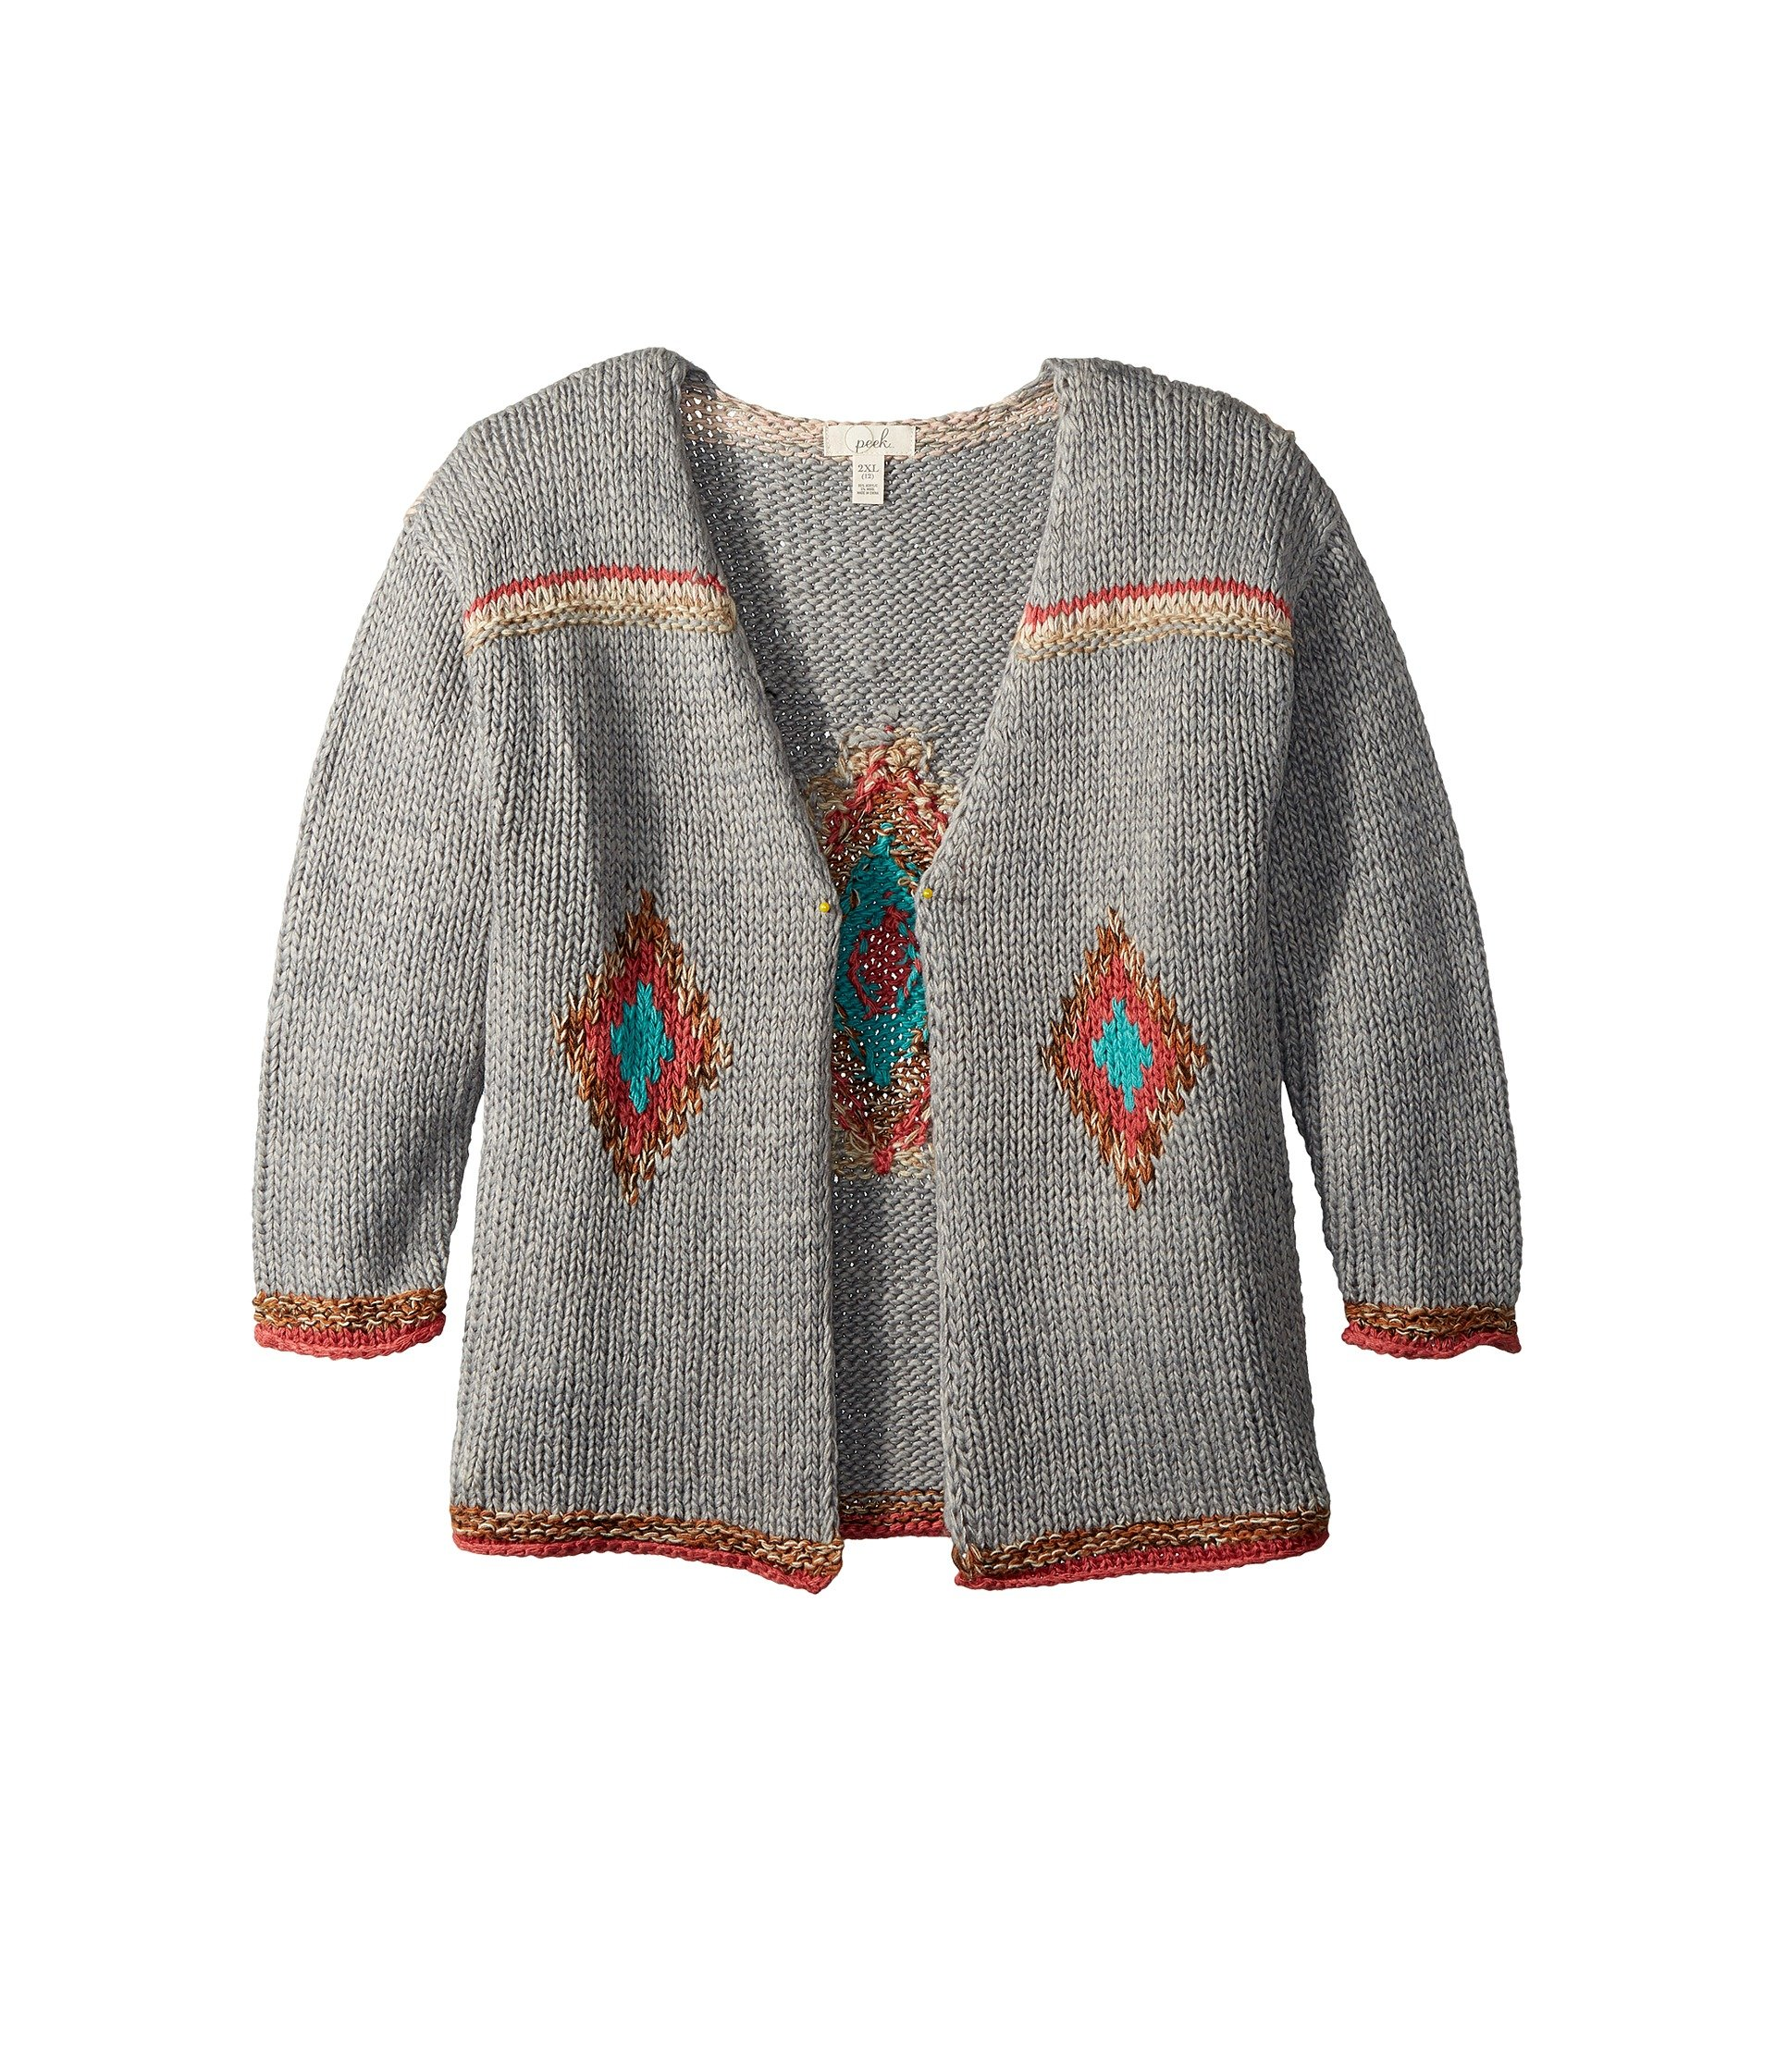 PEEK Marie Cardigan (Toddler/Little Kids/Big Kids) at Zappos.com